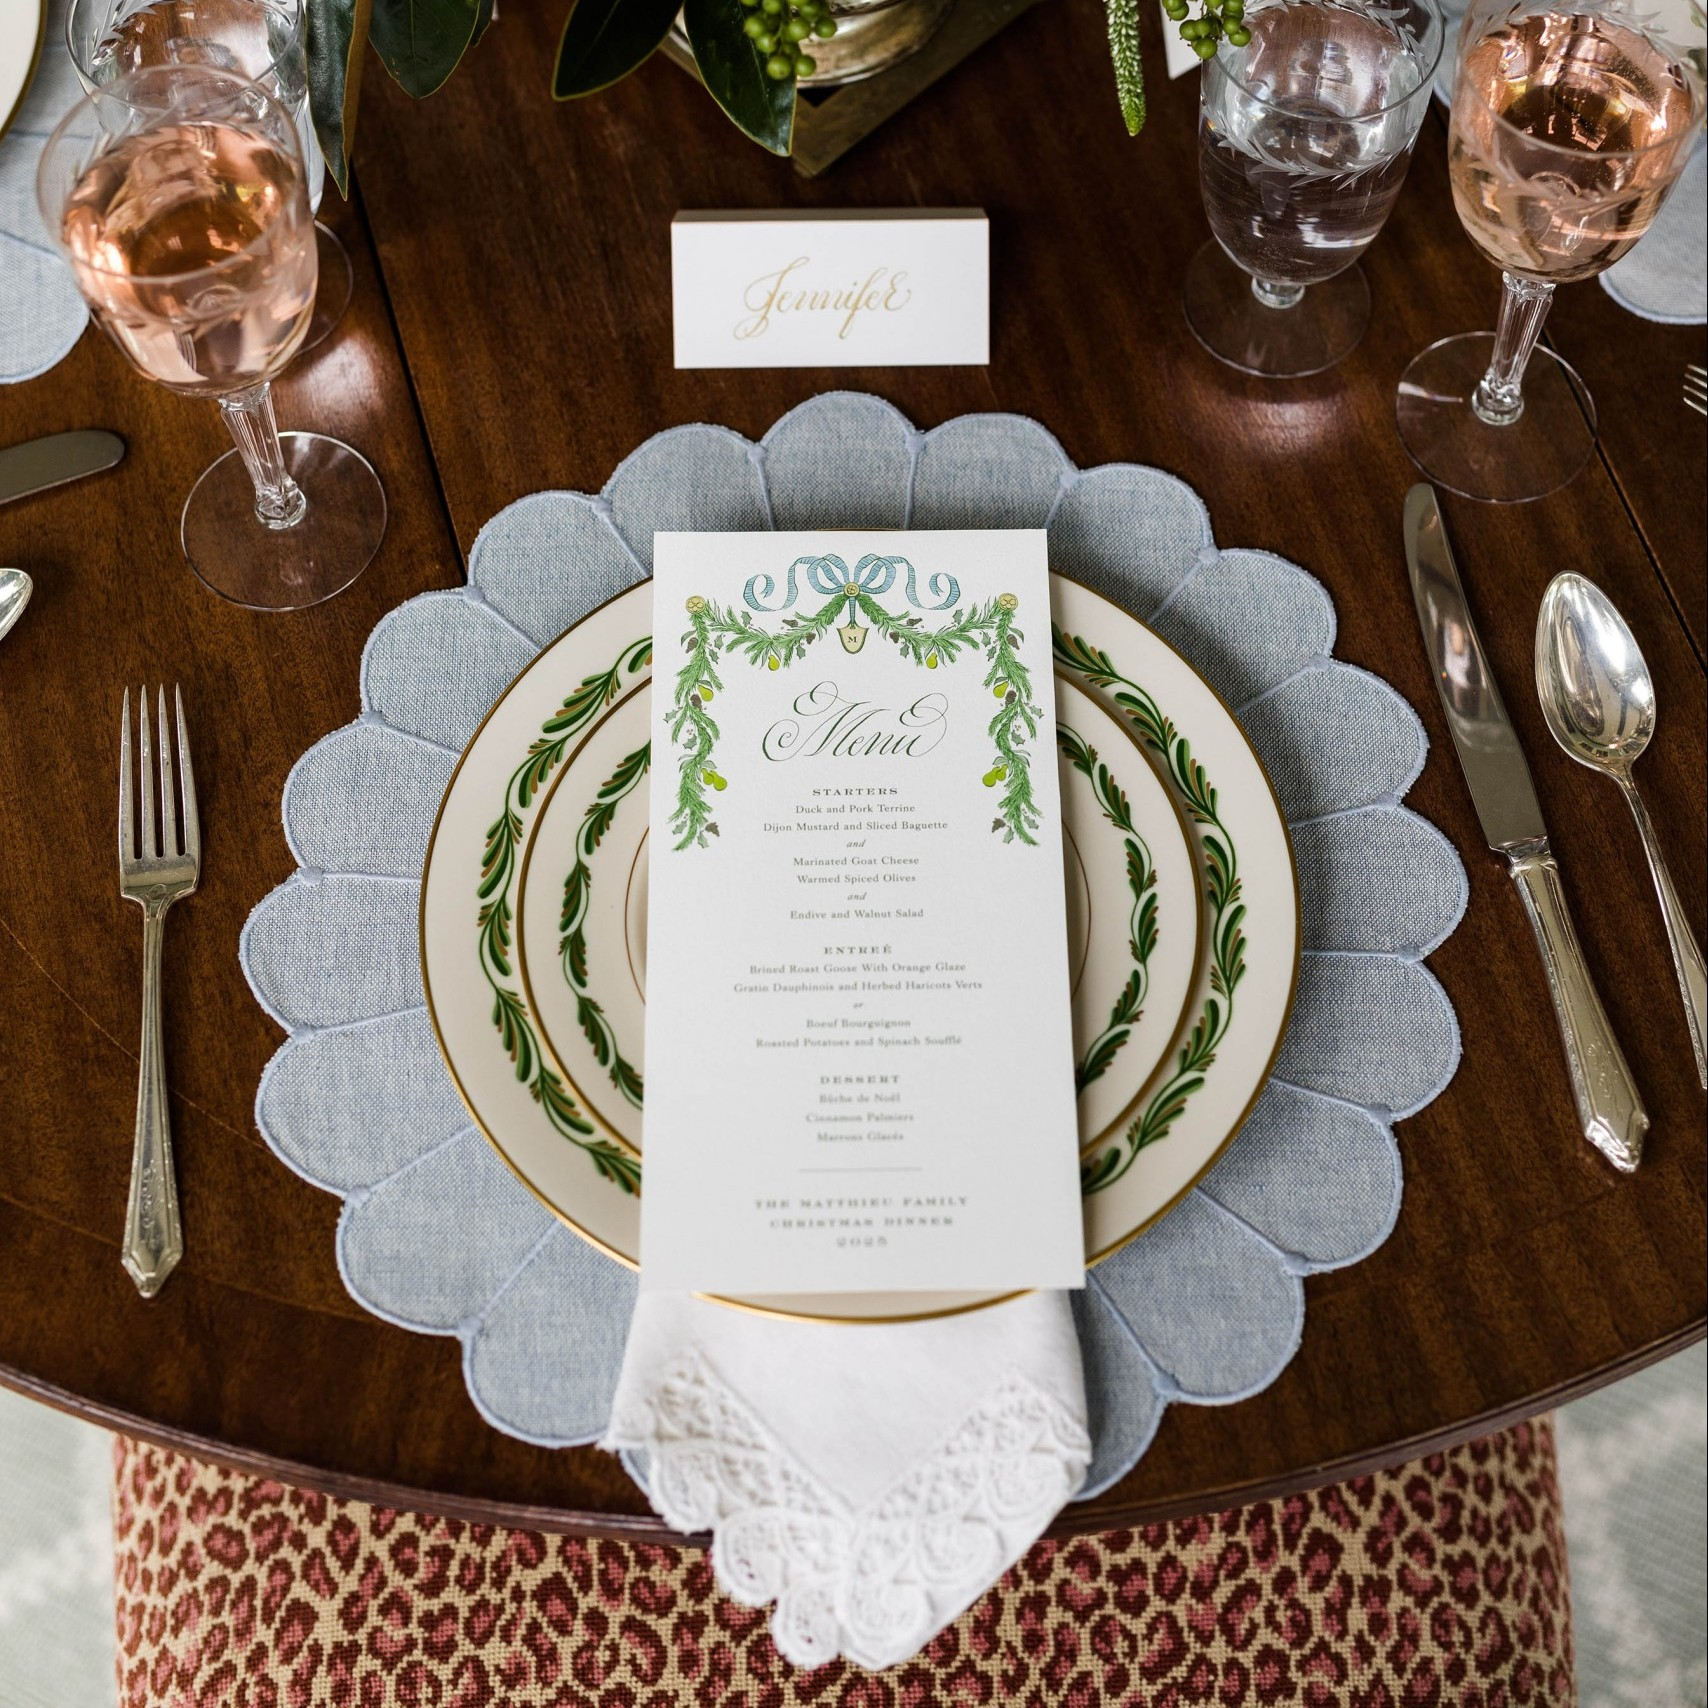 A Christmas Table Set with Family Heirlooms